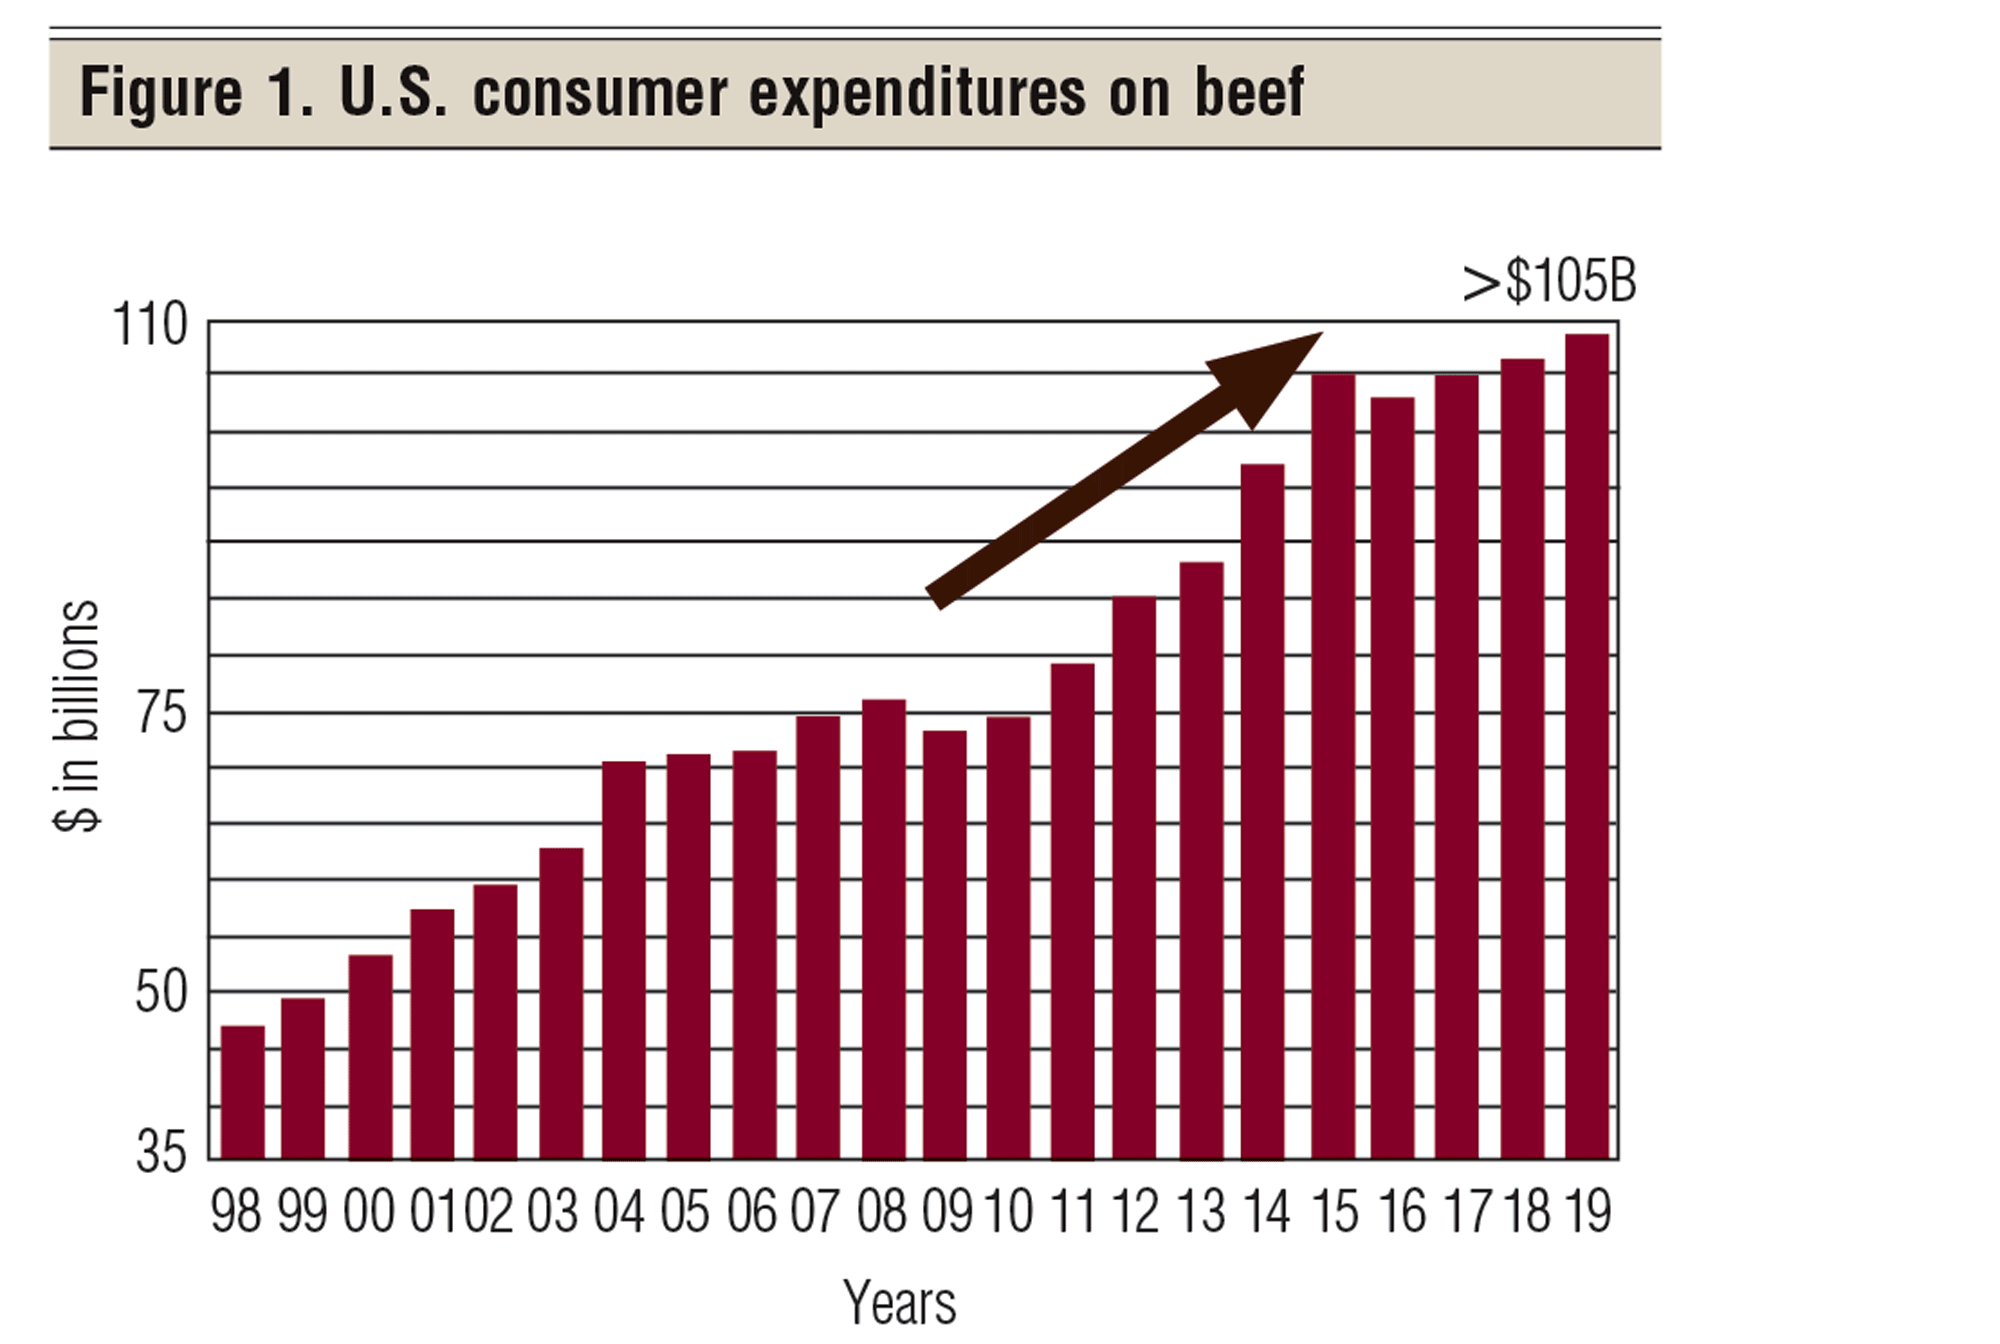 Consumer expenditures on beef